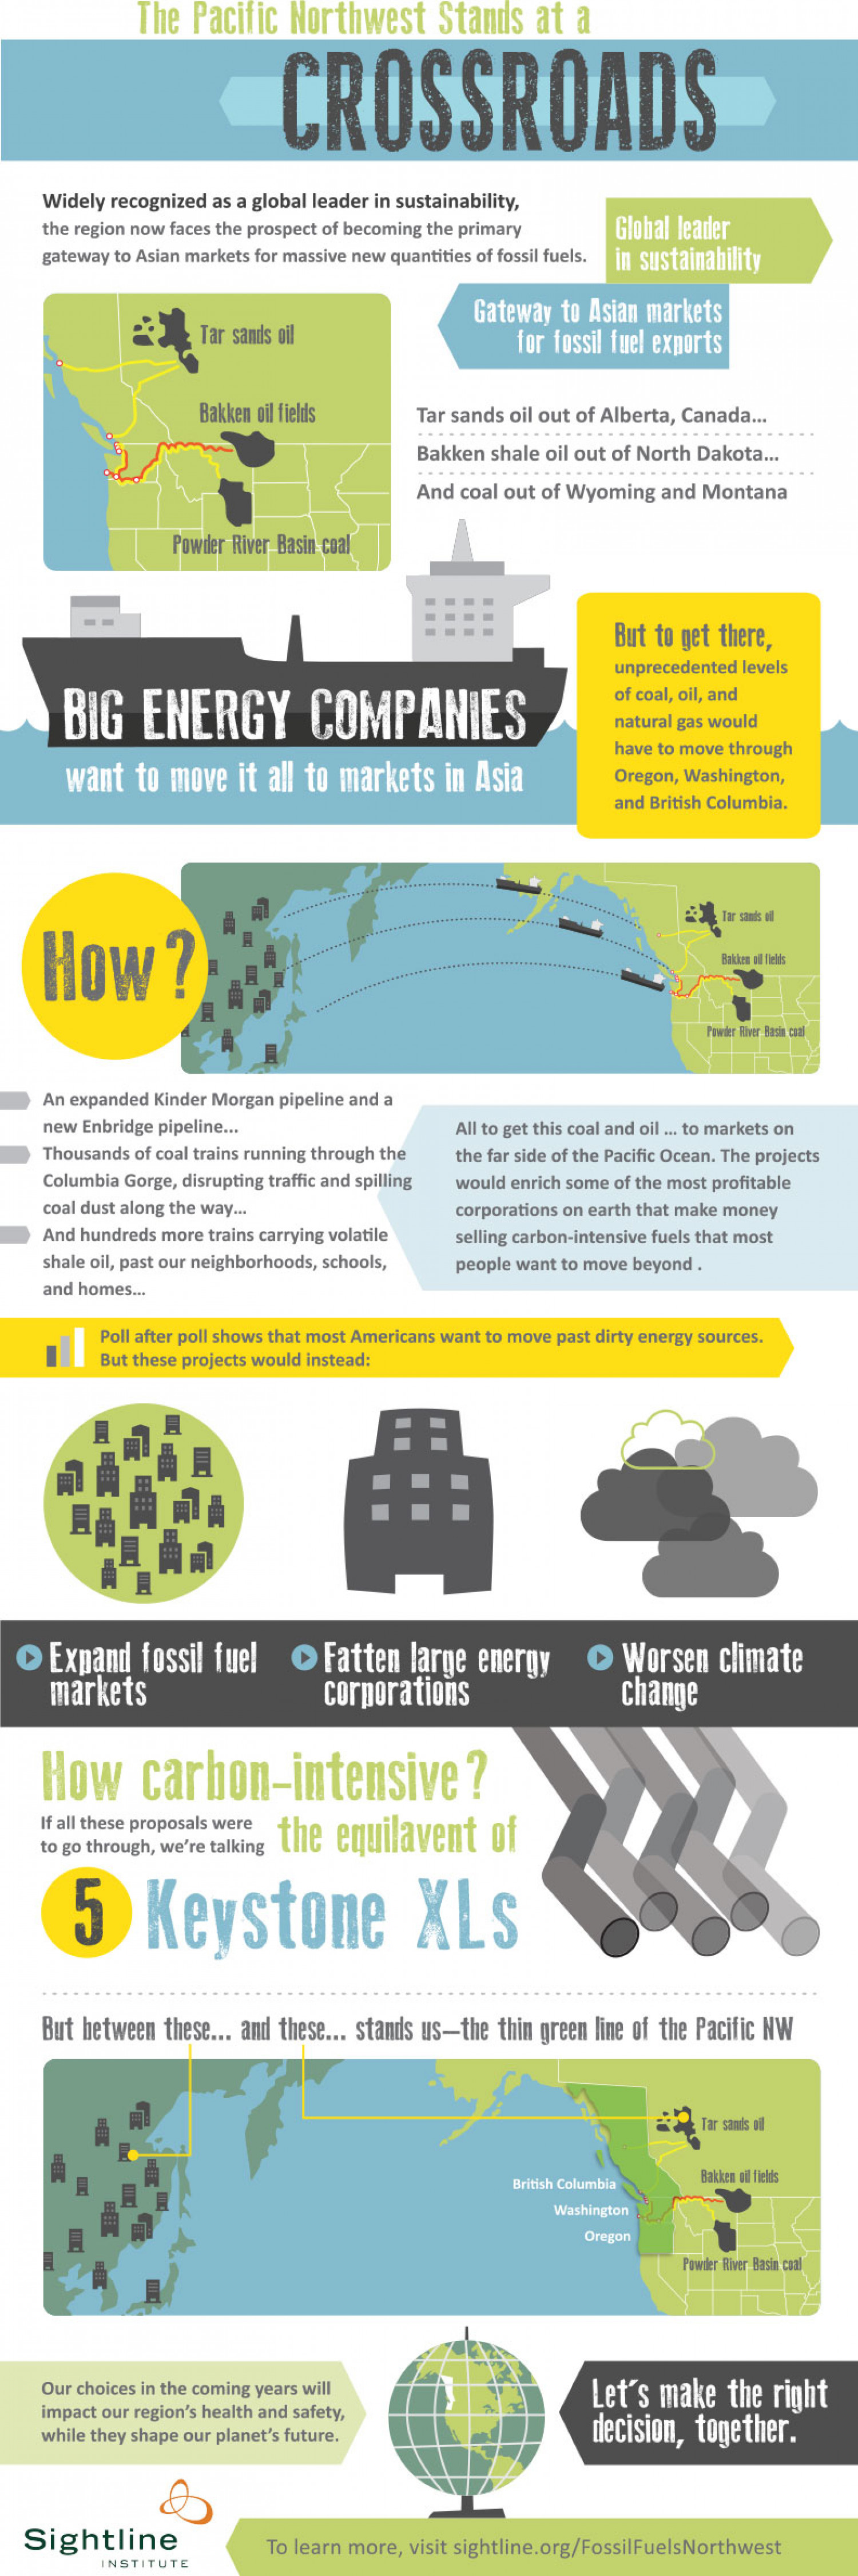 The Pacific Northwest Stands at a Crossroads Infographic